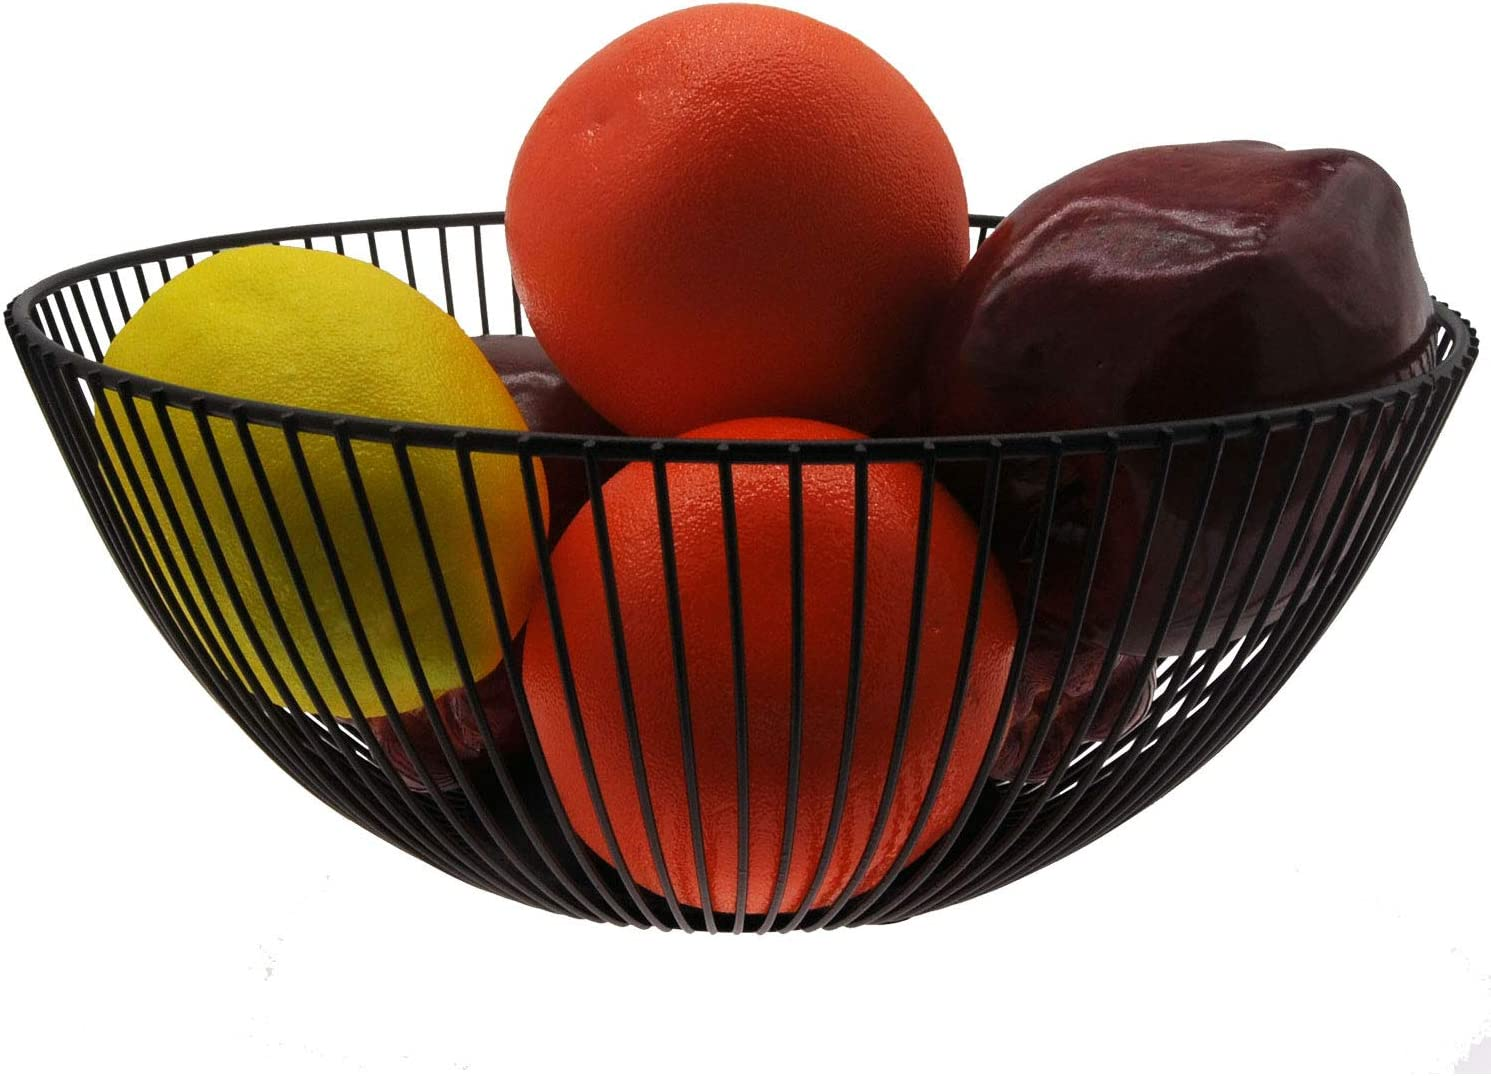 TuoTu IMetal Wire Fruit Don't miss the campaign Basket Kitchen Countertop Fru Bowl Max 53% OFF